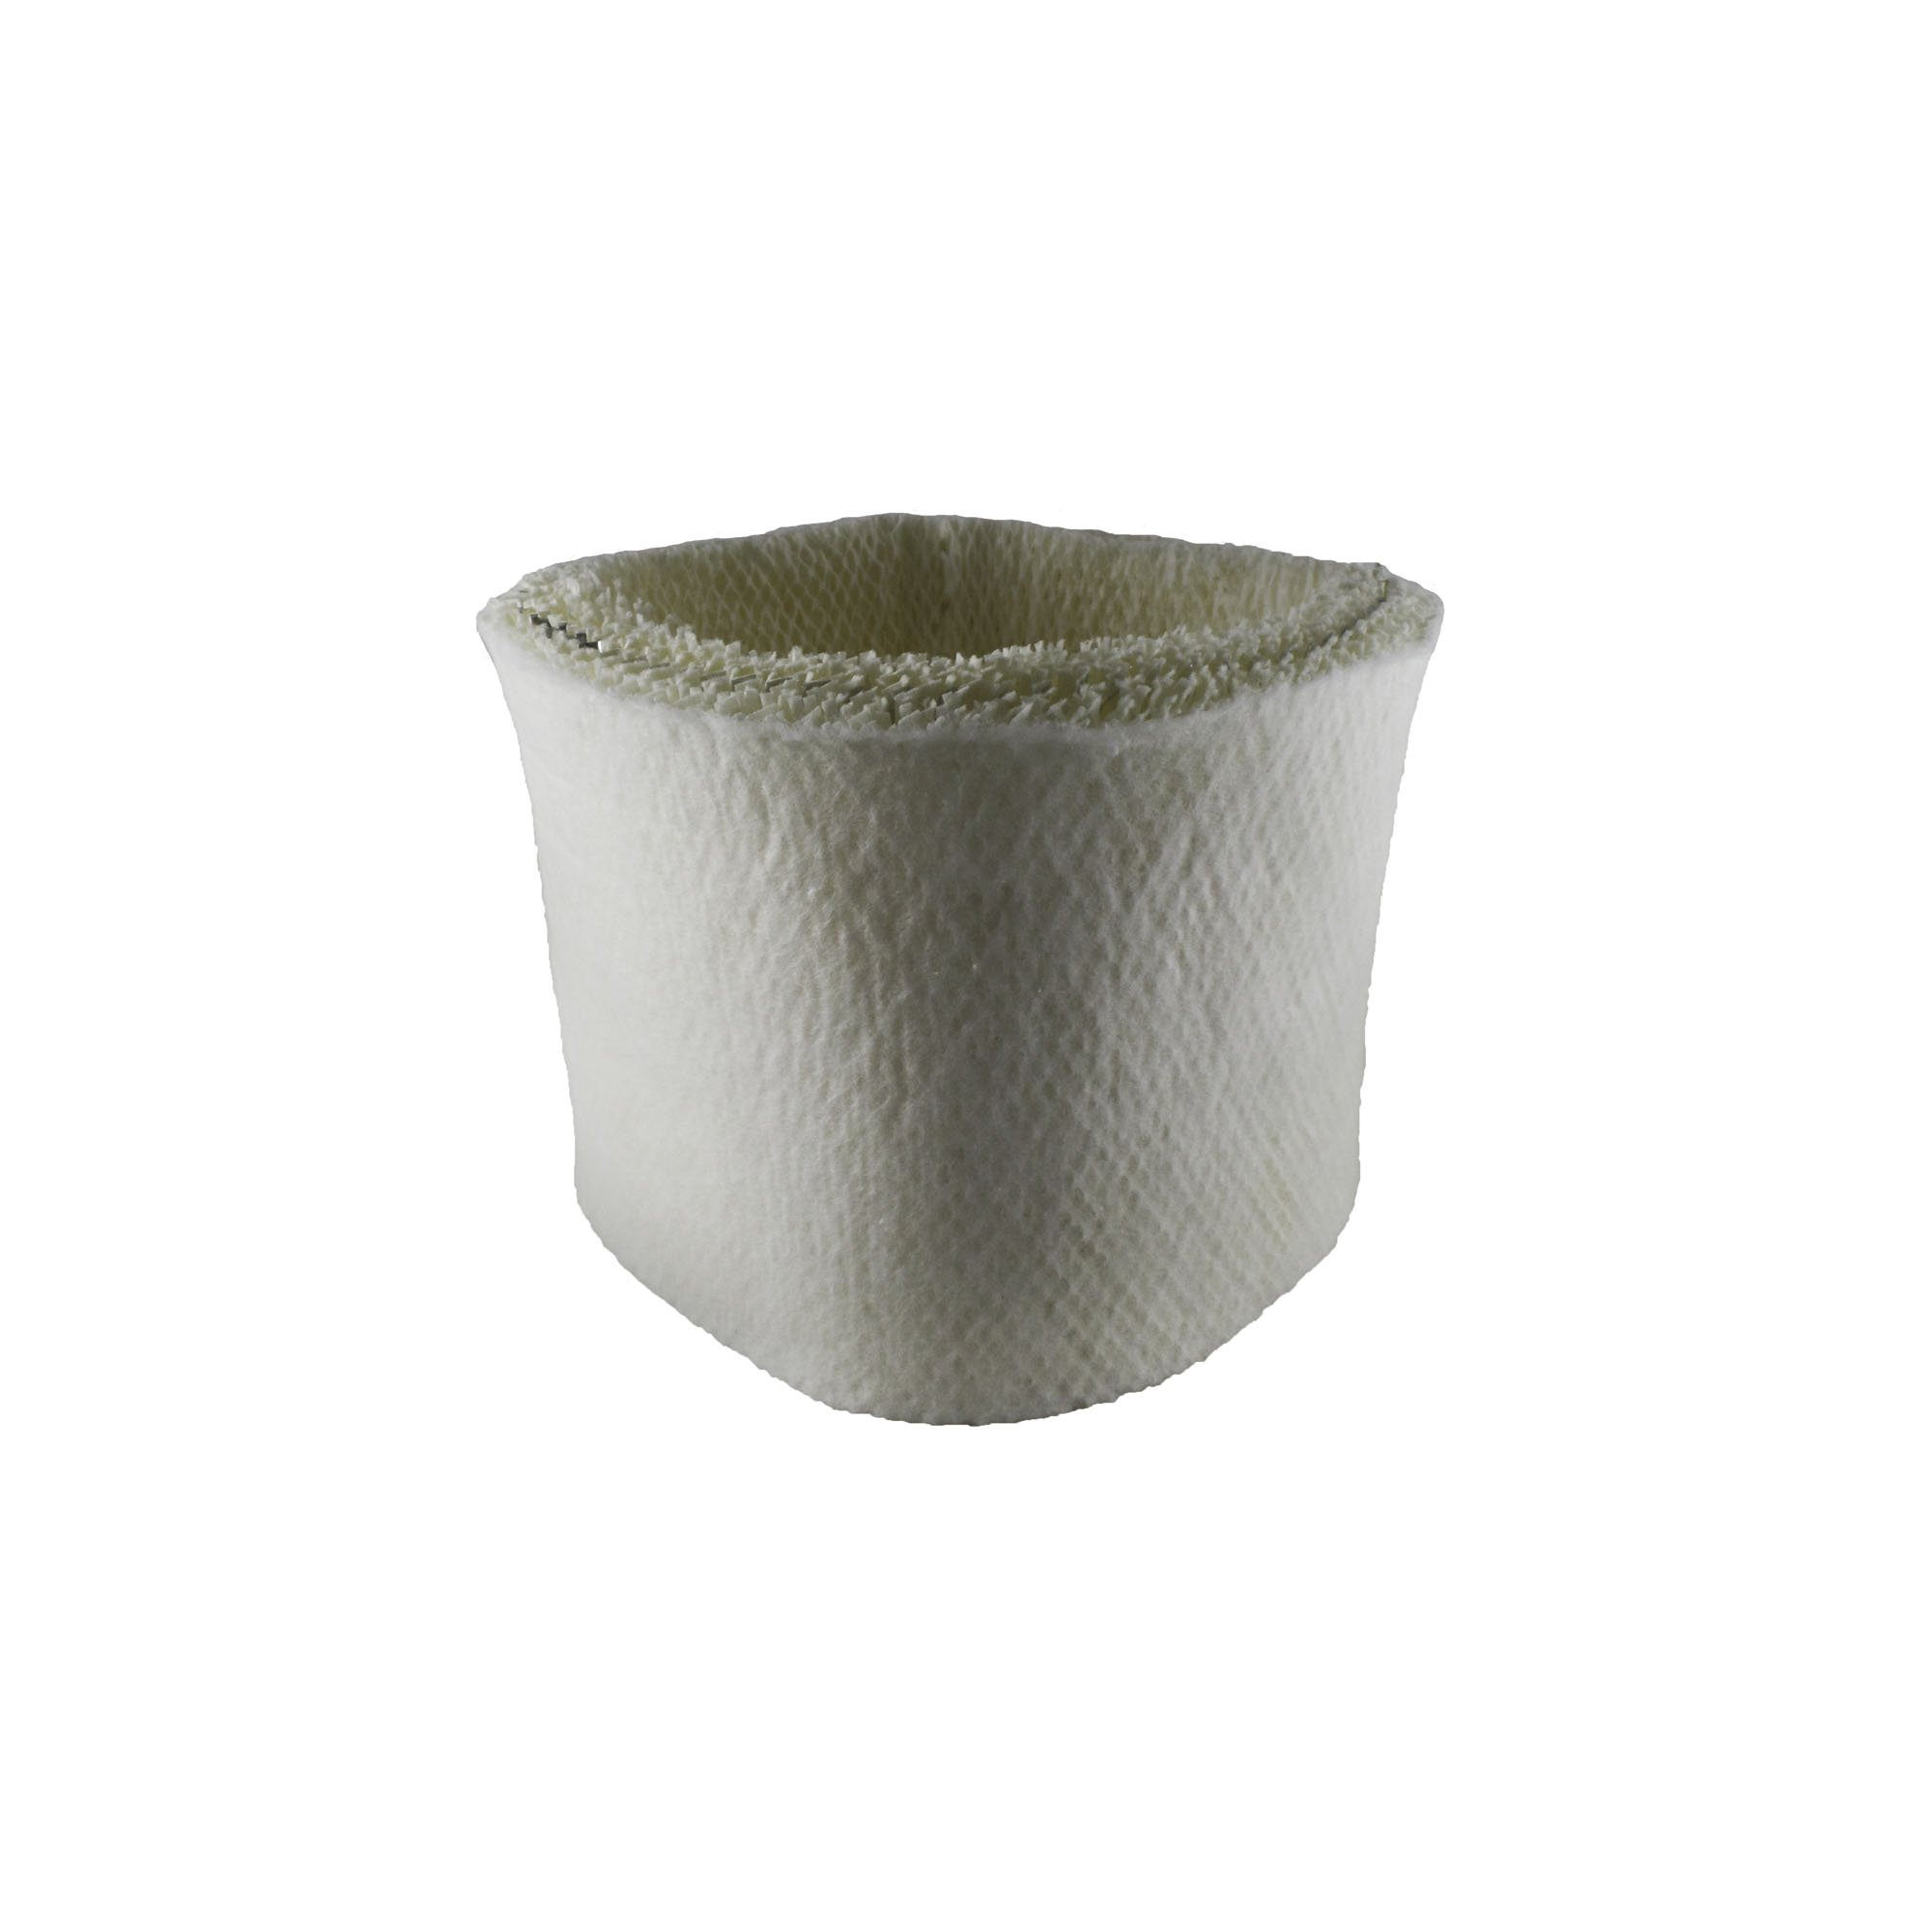 Air Filter Factory Compatible Replacement For Honeywell HW14 Humidifier Filter